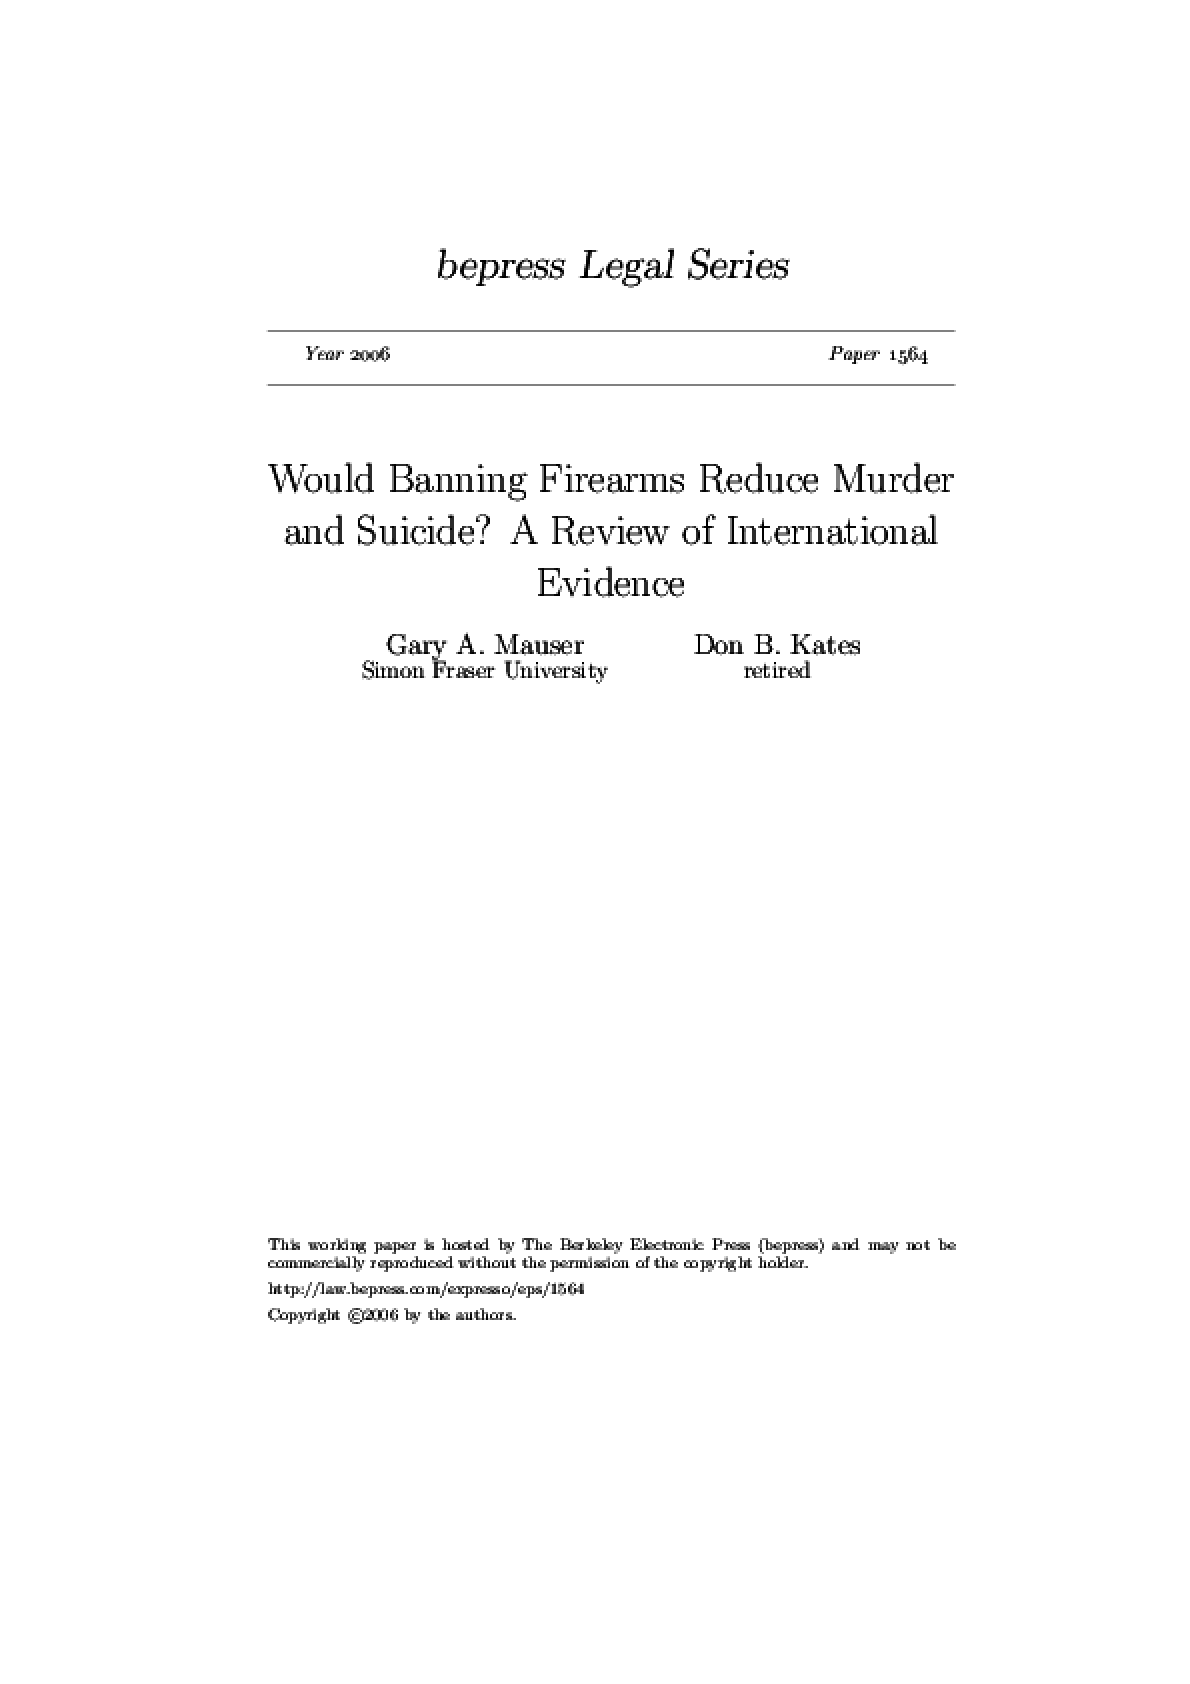 Would banning firearms reduce murder and suicide? A review of international evidence